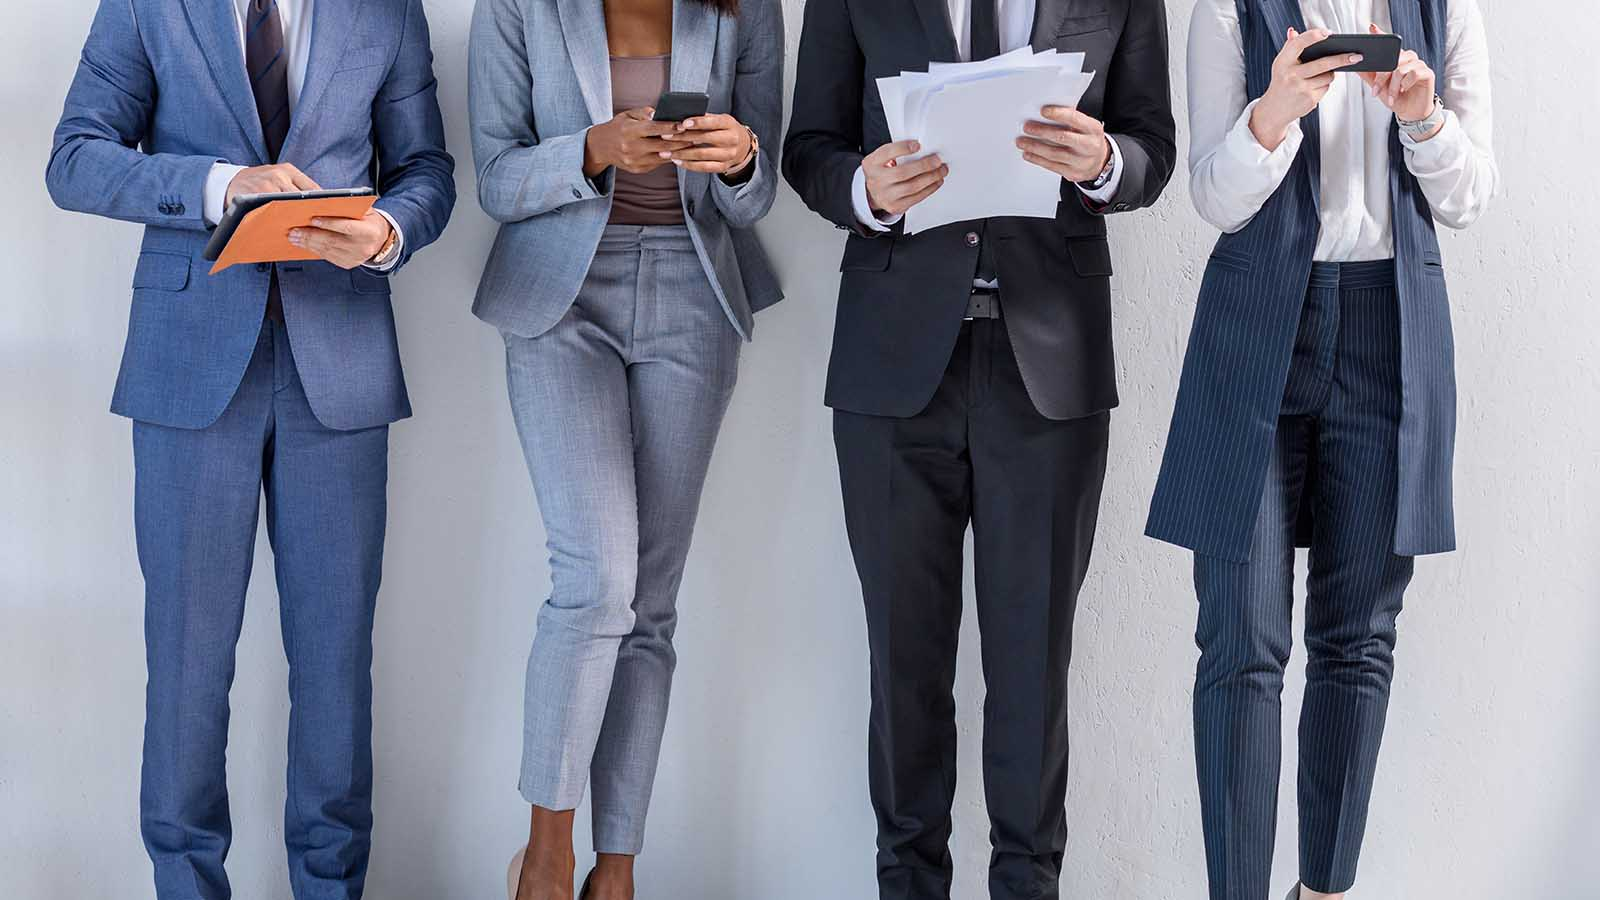 How to Recruit Top-Notch Talent at Your Cannabis Retail Operation